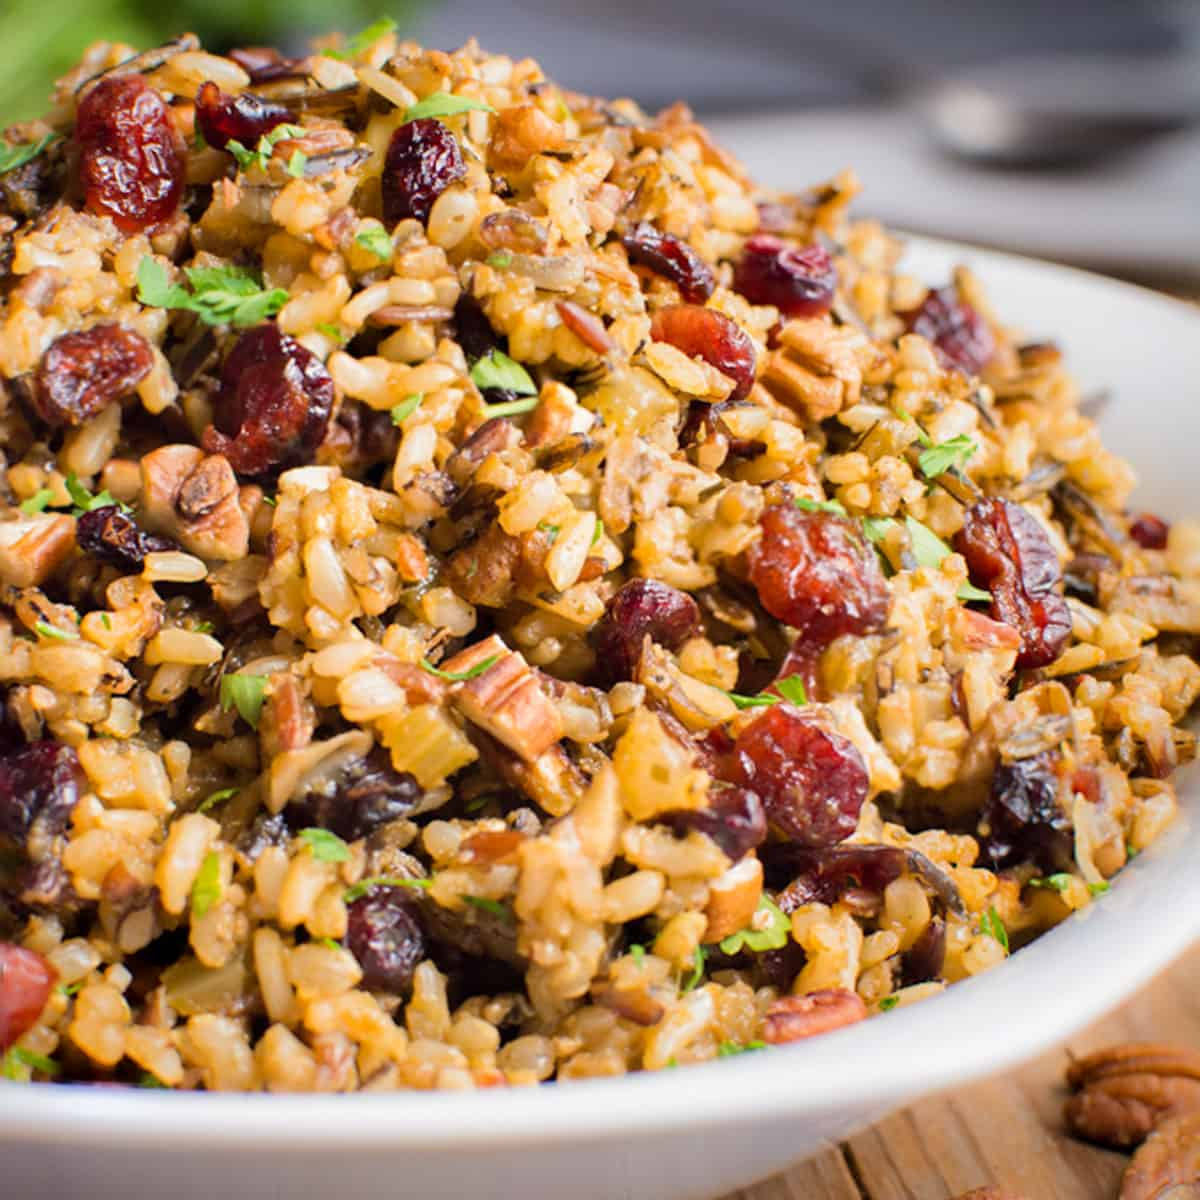 A serving bowl fill with Gluten-Free Wild Rice Stuffing.